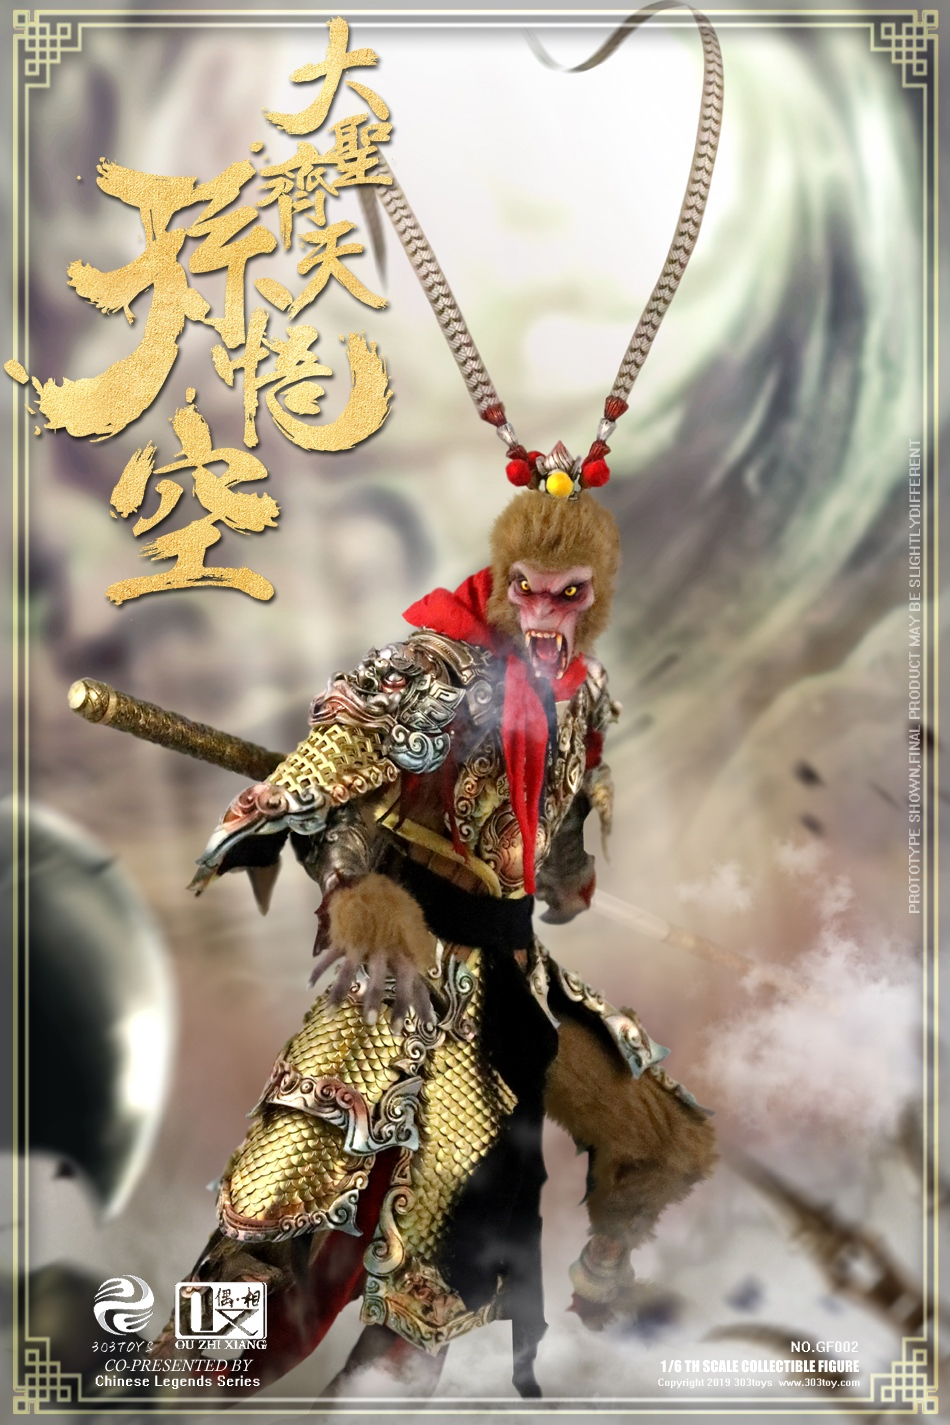 EveningPhase - NEW PRODUCT: 303TOYS x Evening phase: 1/6 National Wind Legend Series - Sun Wukong Monkey King Apocalypse & Dasheng Qitian & Stepping 18090711